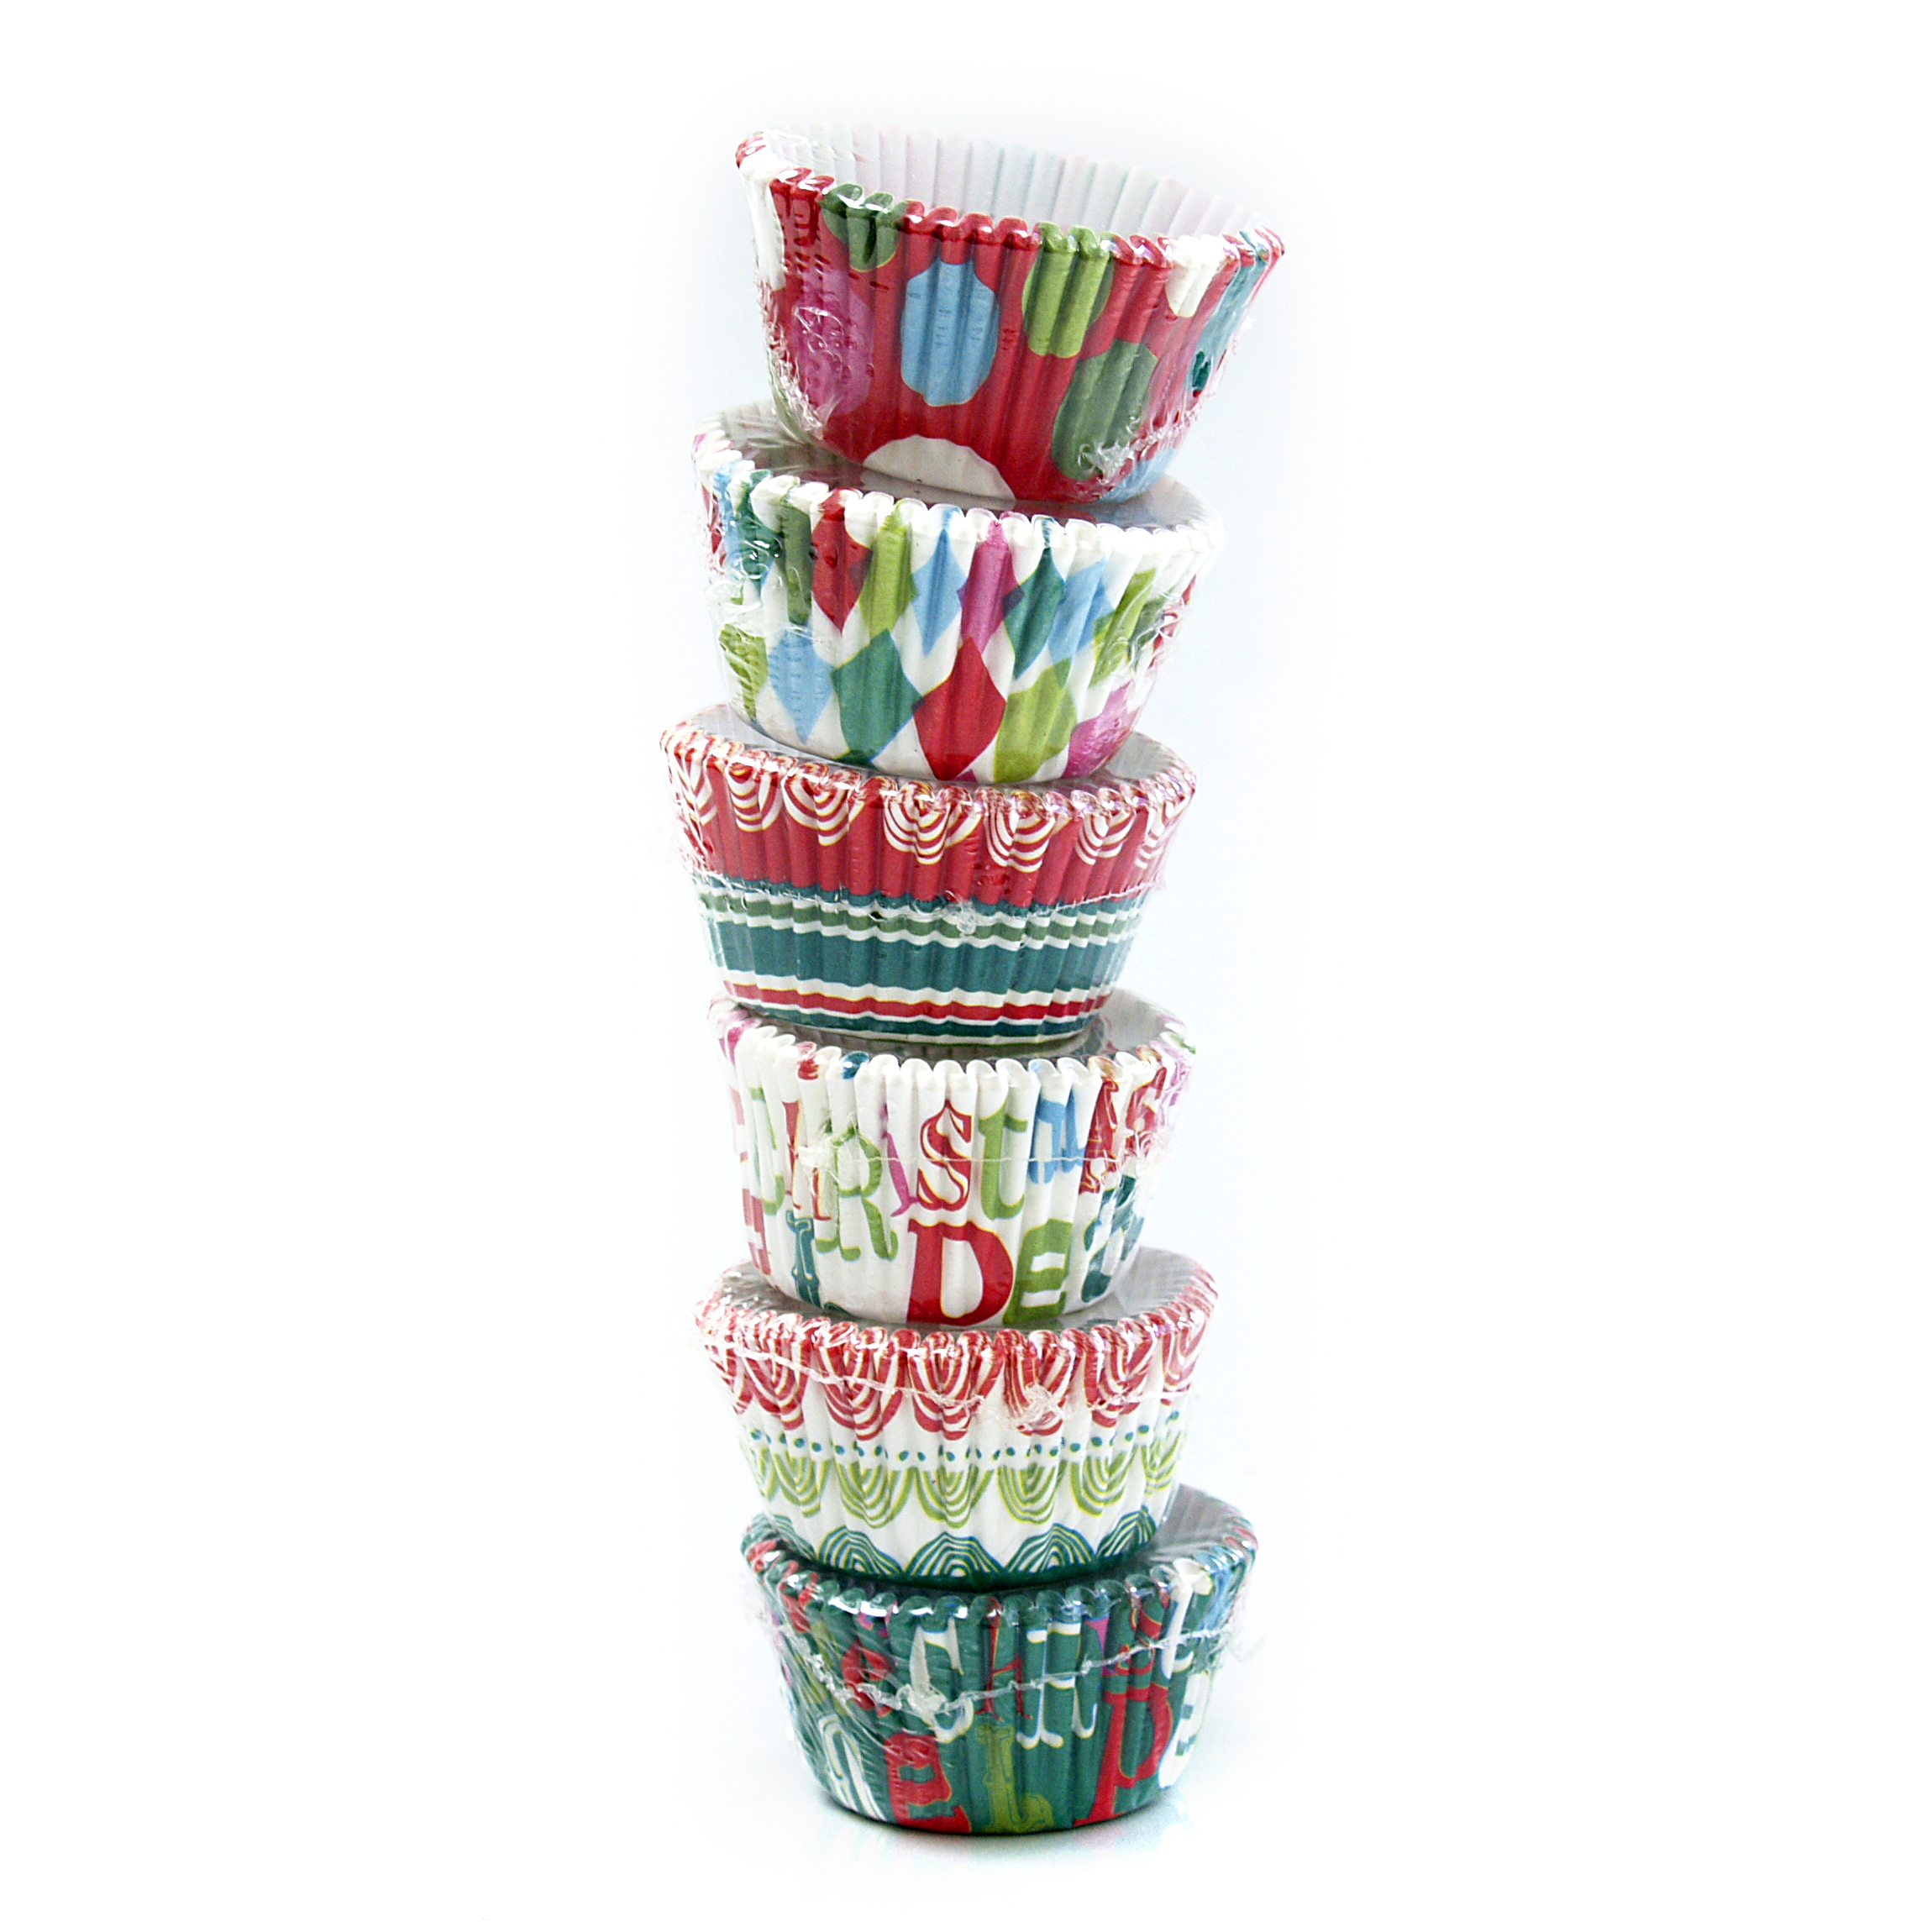 Meri Meri Tis the Season Petite Cupcake Kit, Makes 120